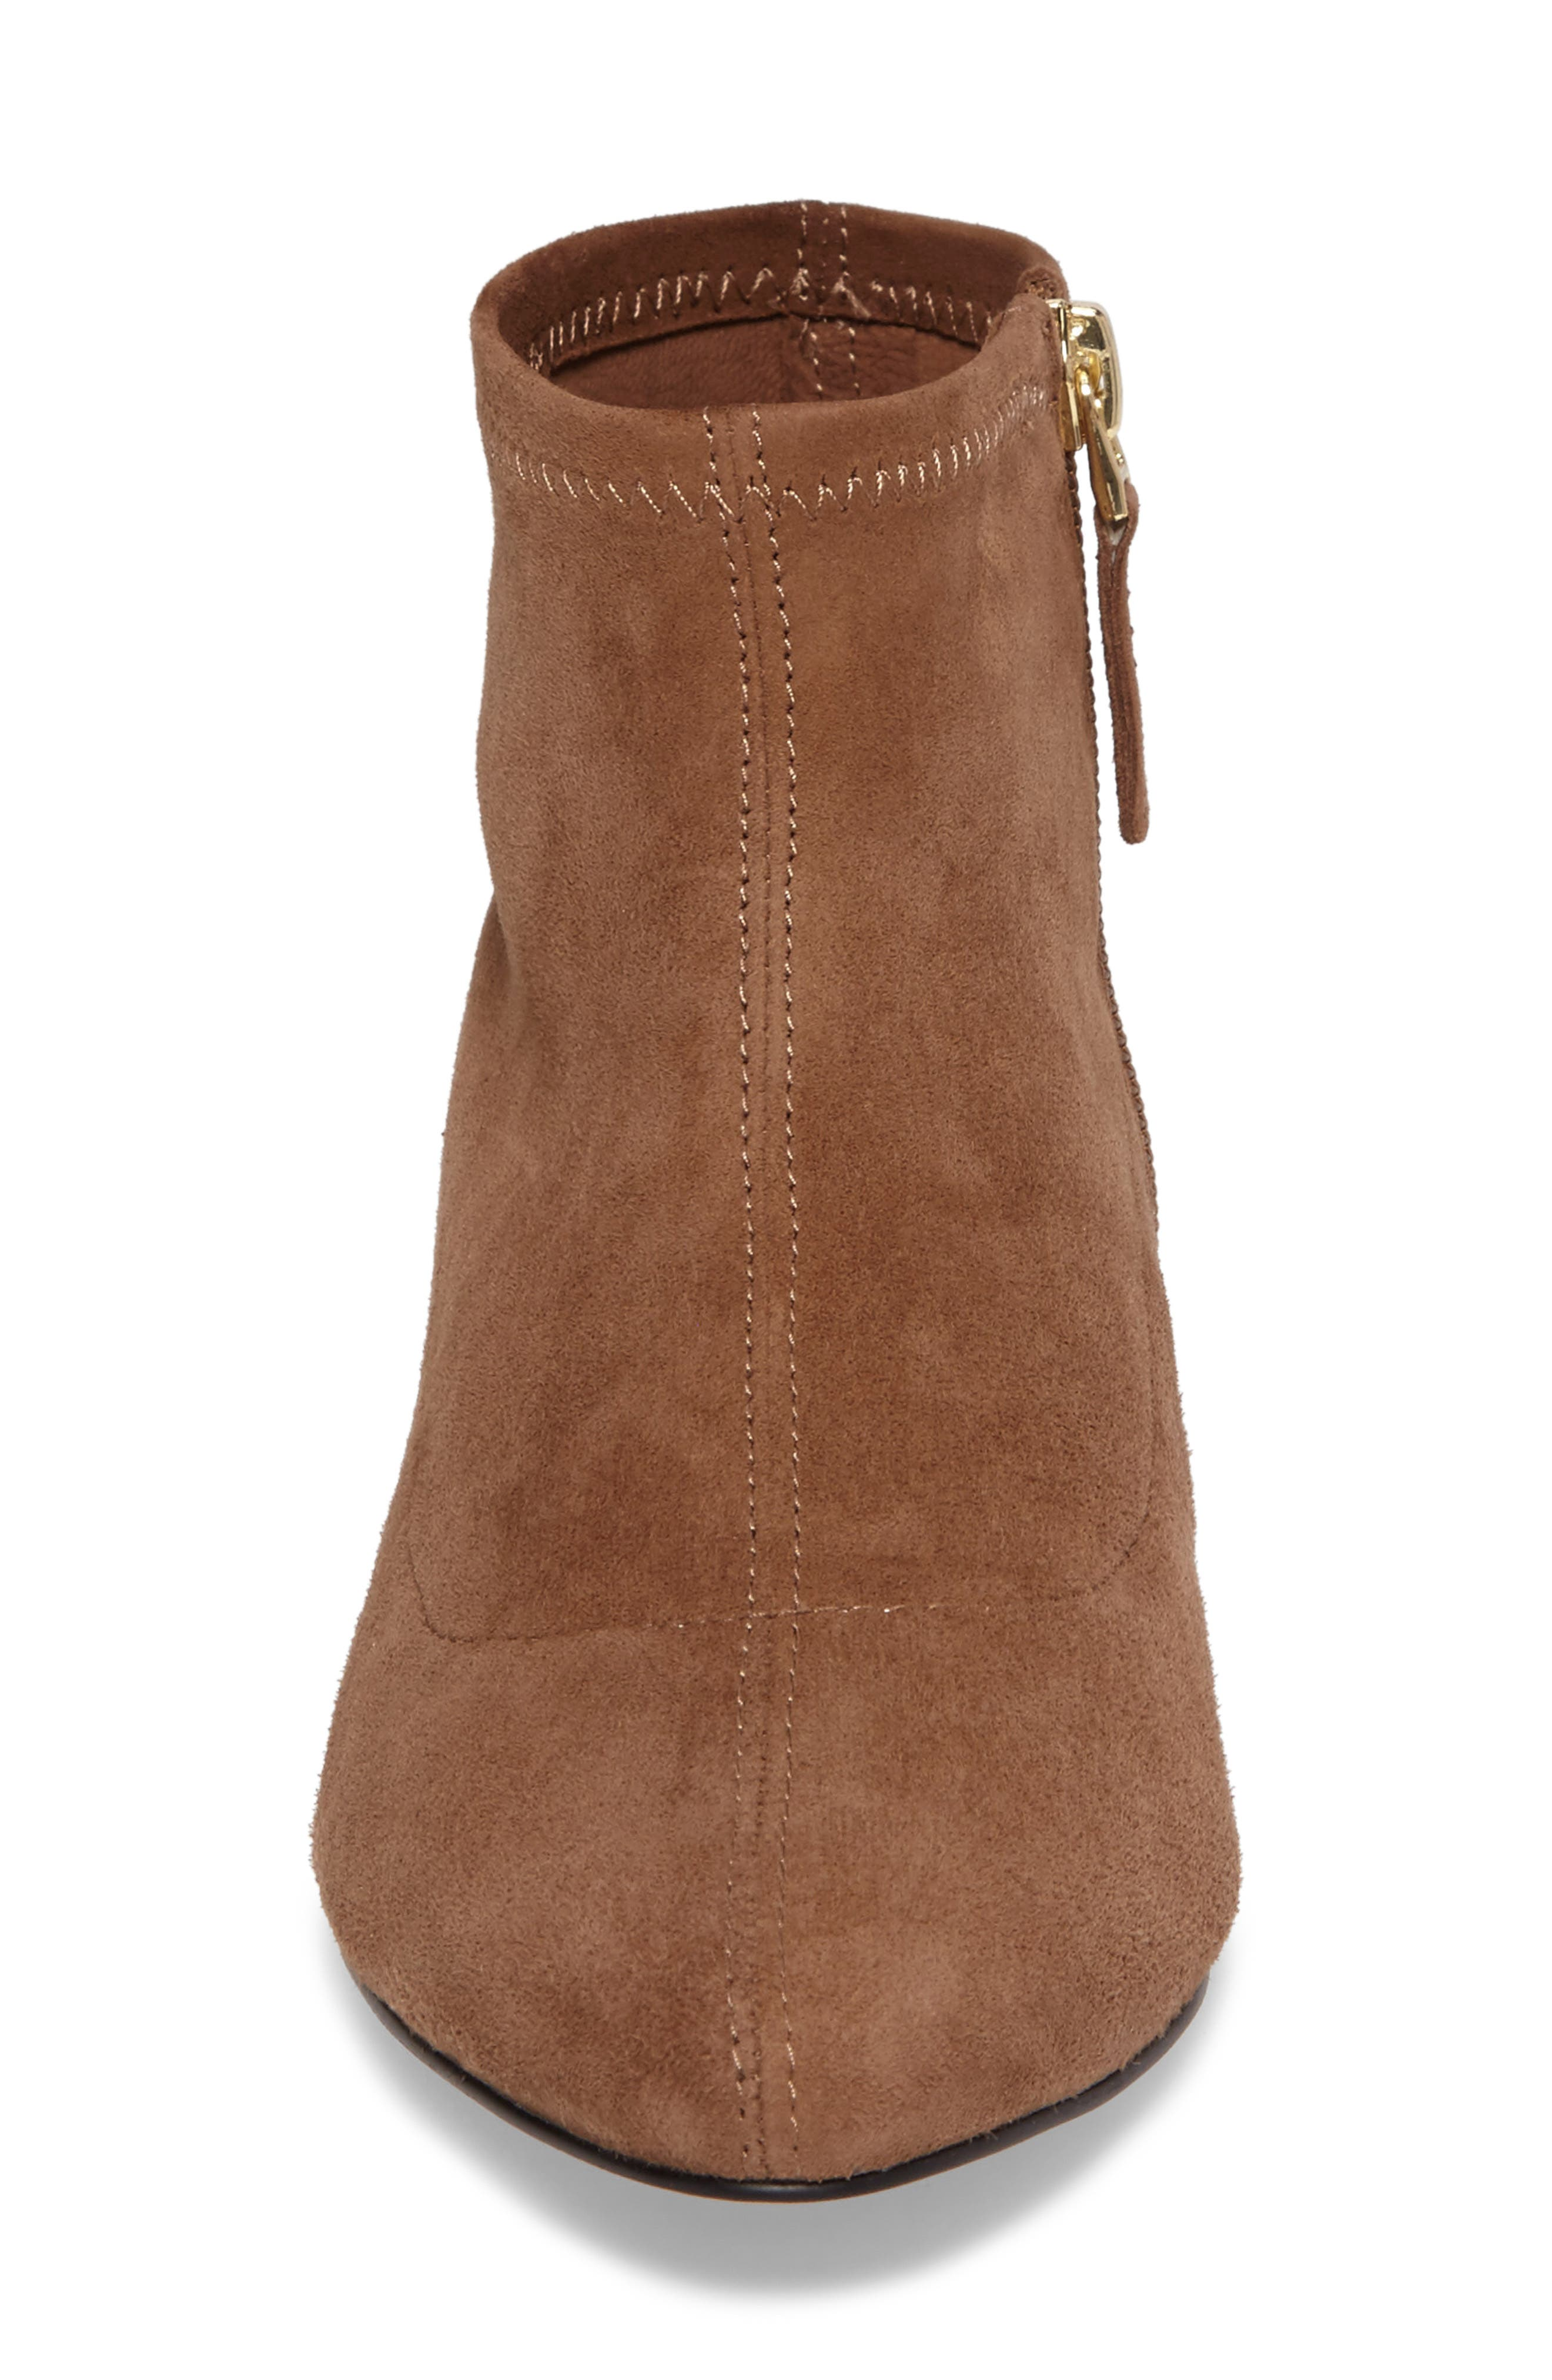 SUDINI, Aletta Bootie, Alternate thumbnail 4, color, TOBACCO SUEDE